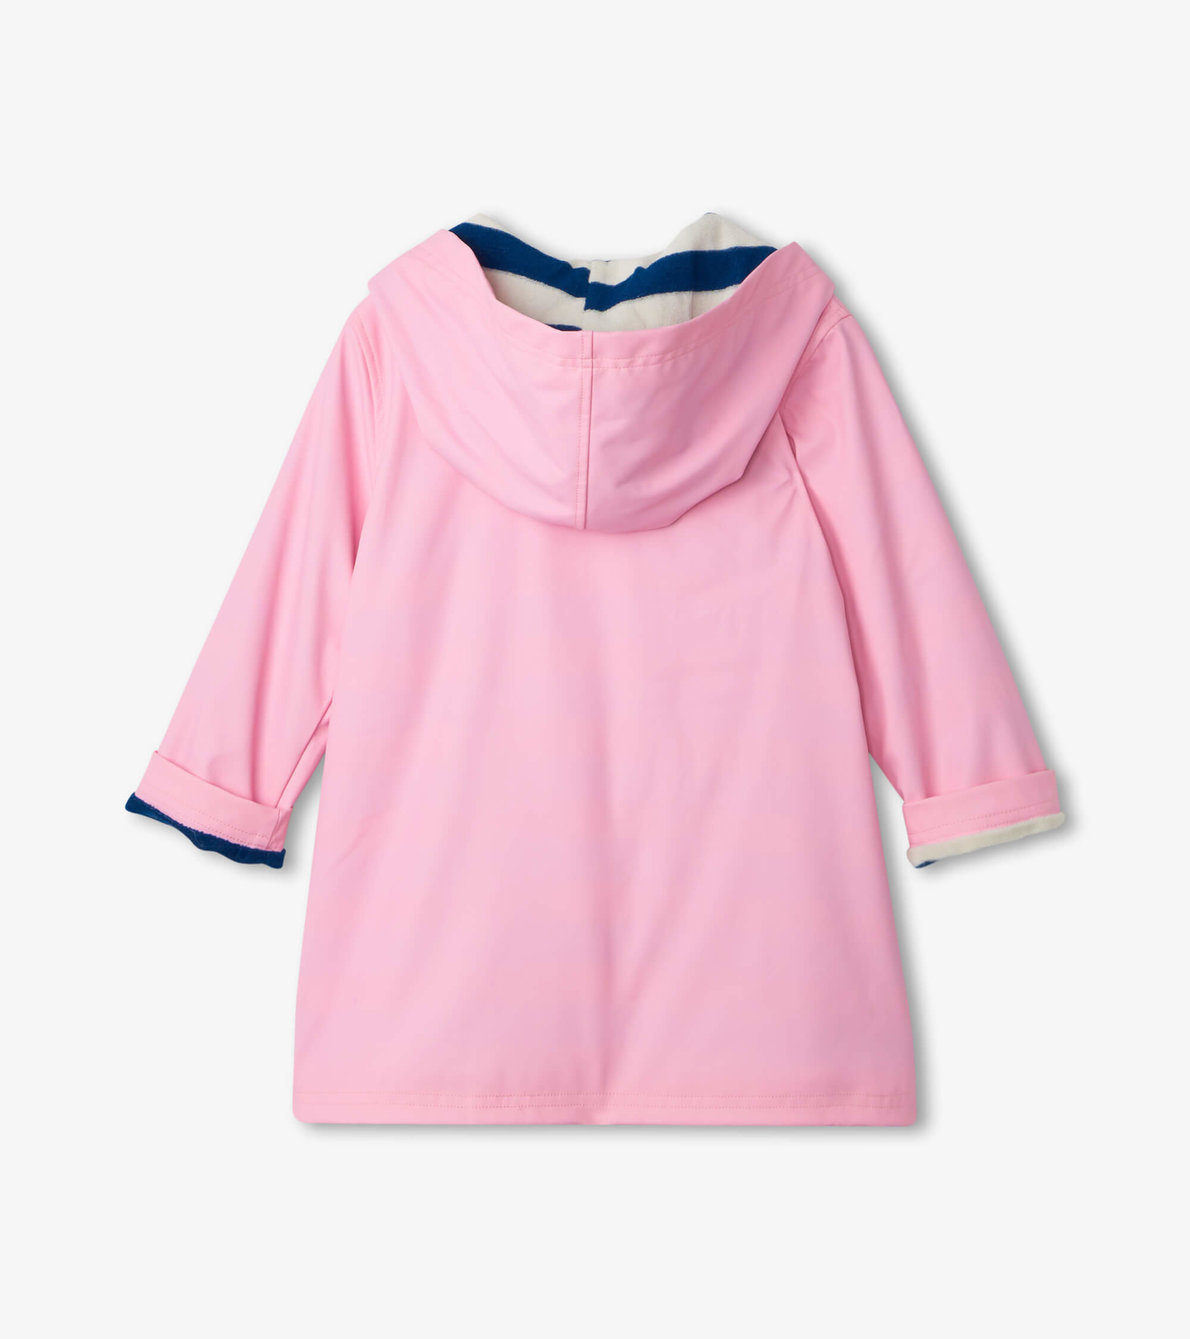 View larger image of Classic Pink with Navy Stripe Lining Splash Jacket